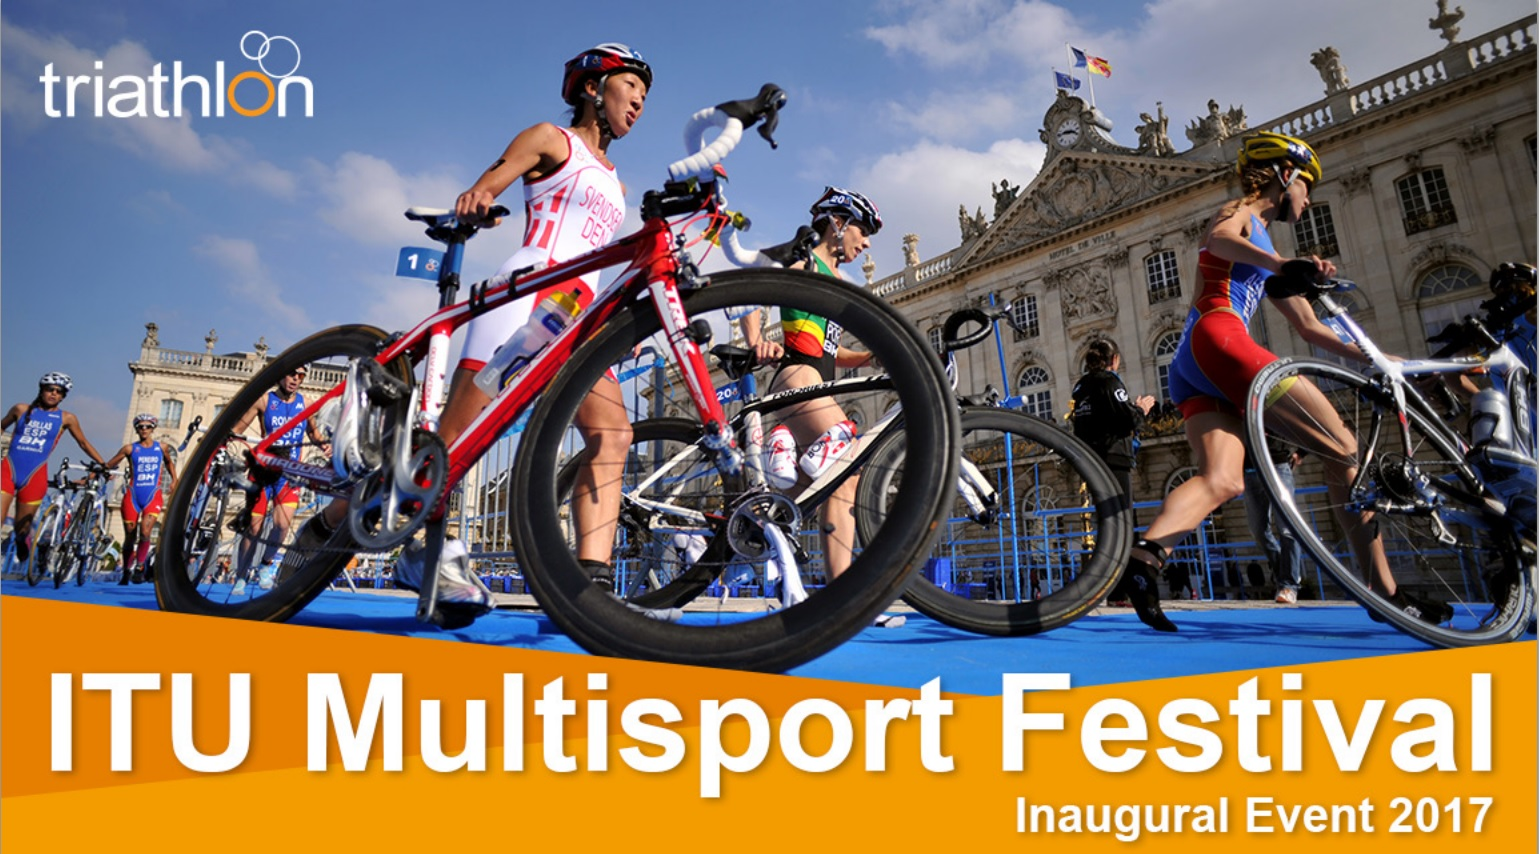 The ITU has announced a new Multisport World Championship Festival which will debut in 2017 ©ITU